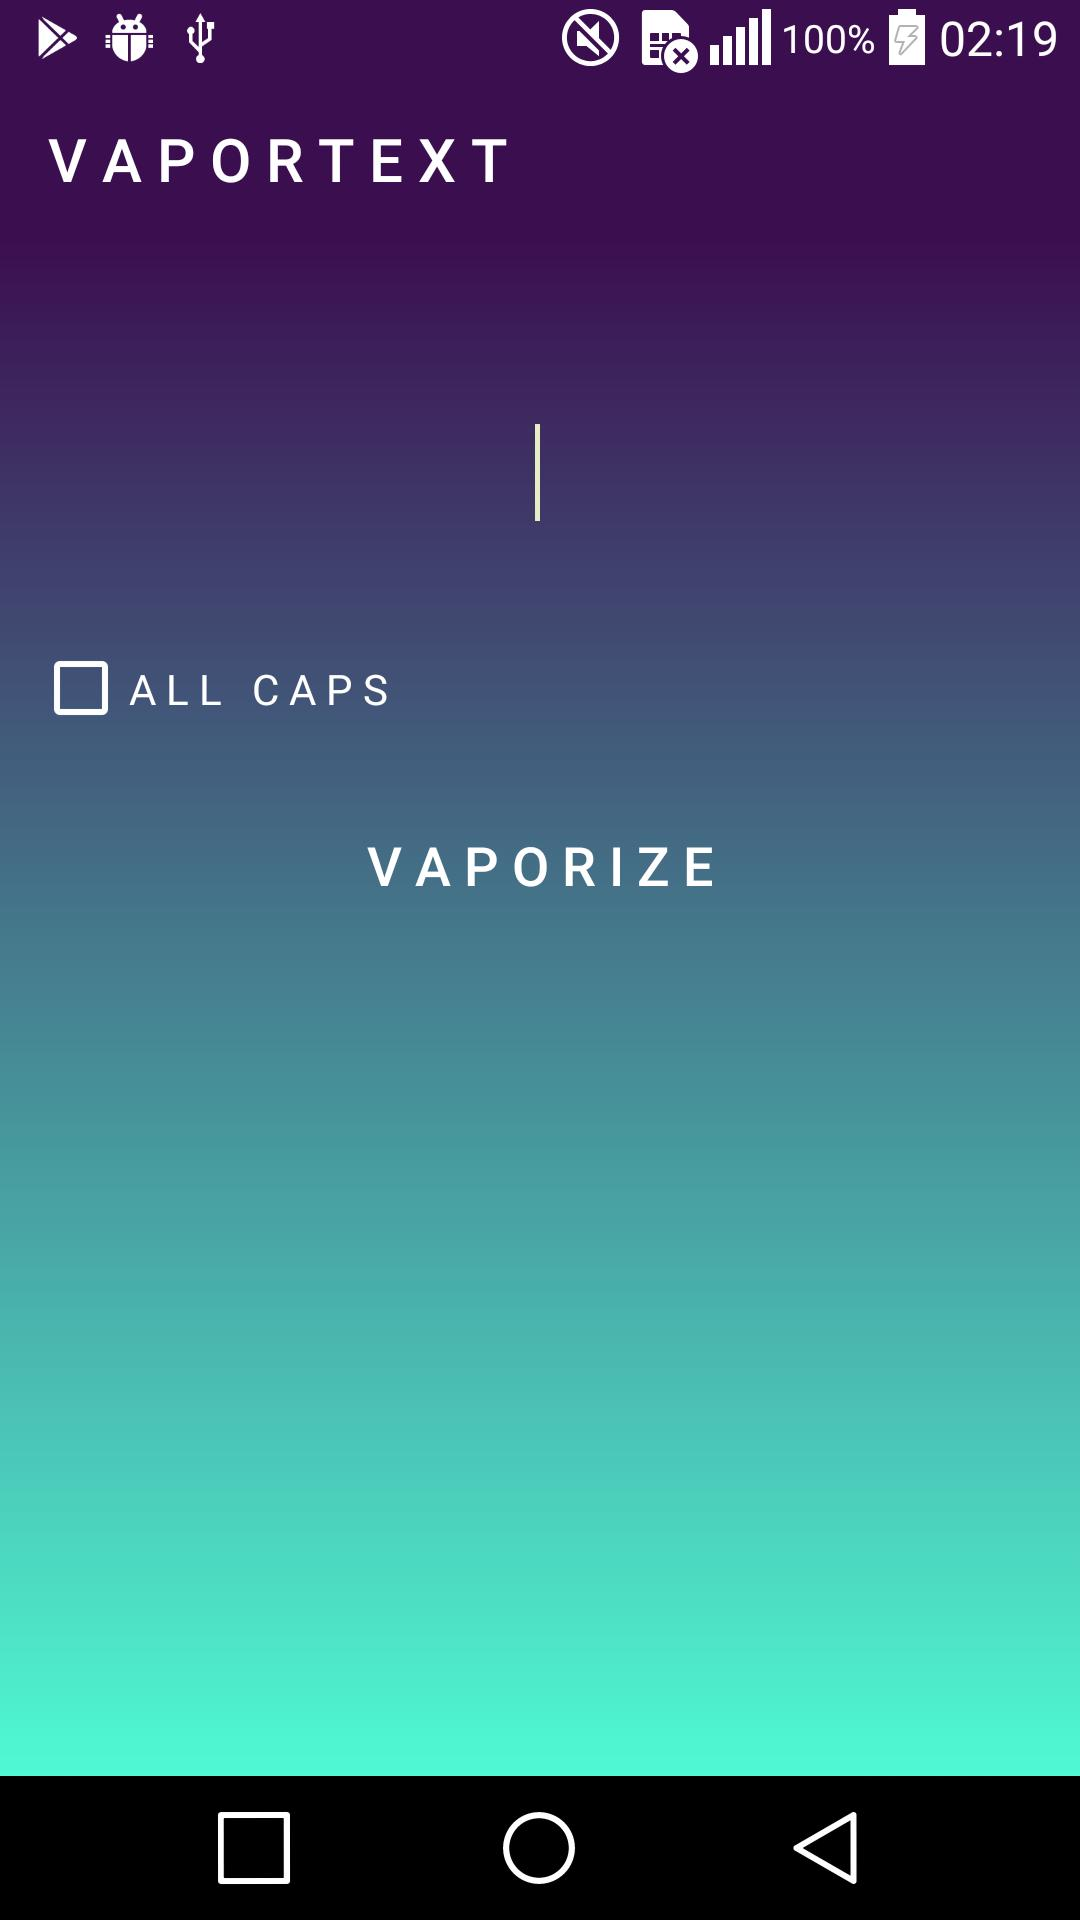 Vapor Text - Vaporwave Text Generator for Android - APK Download